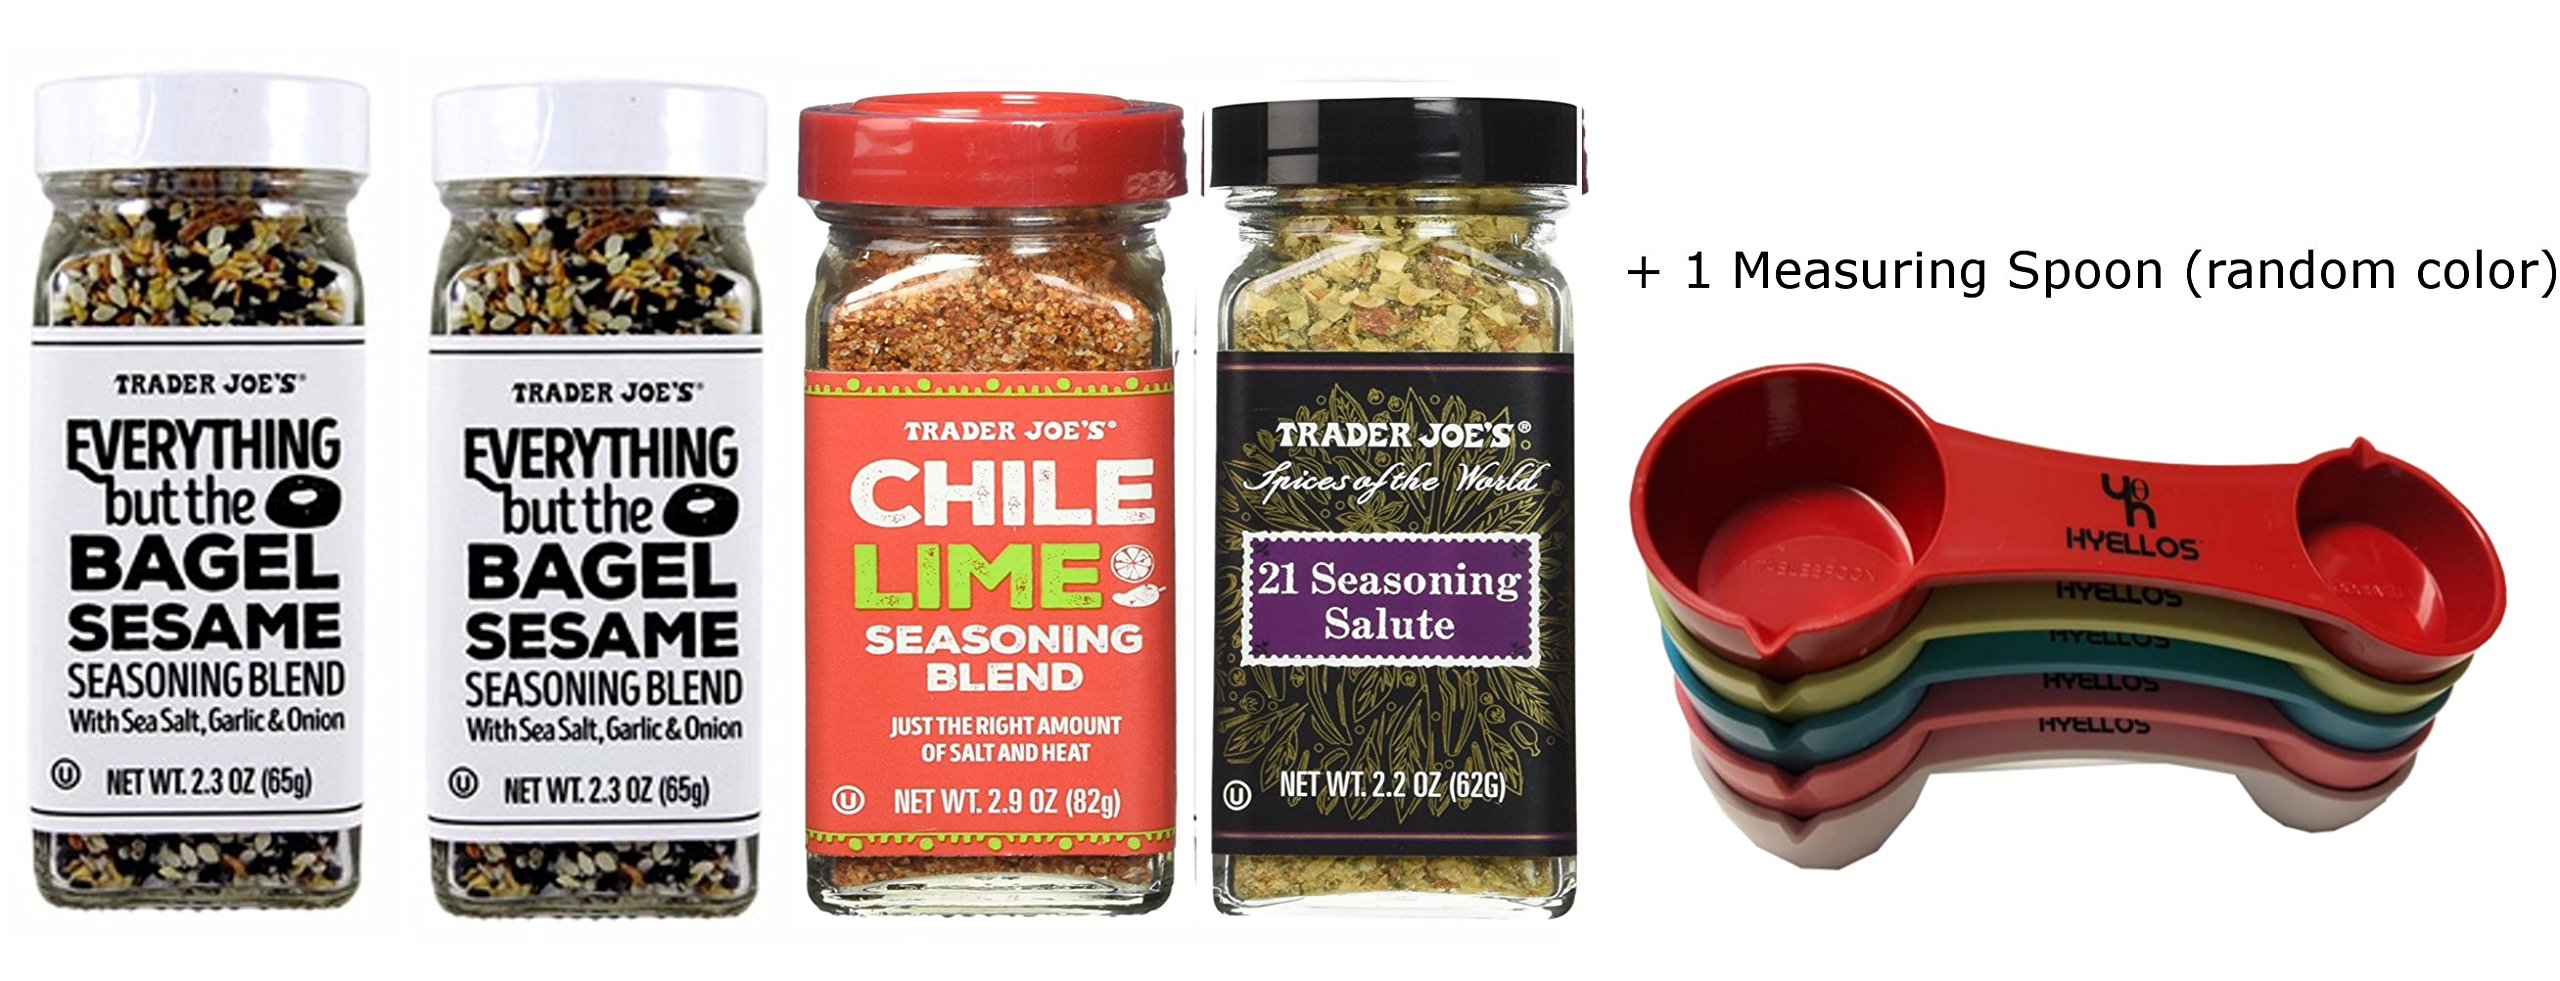 Trader Joes Everything But The Bagel Sesame Seasoning Blend (2 Pack), Chile Lime, 21 Seasoning Salute and Exclusive Hyellos Measuring Spoon